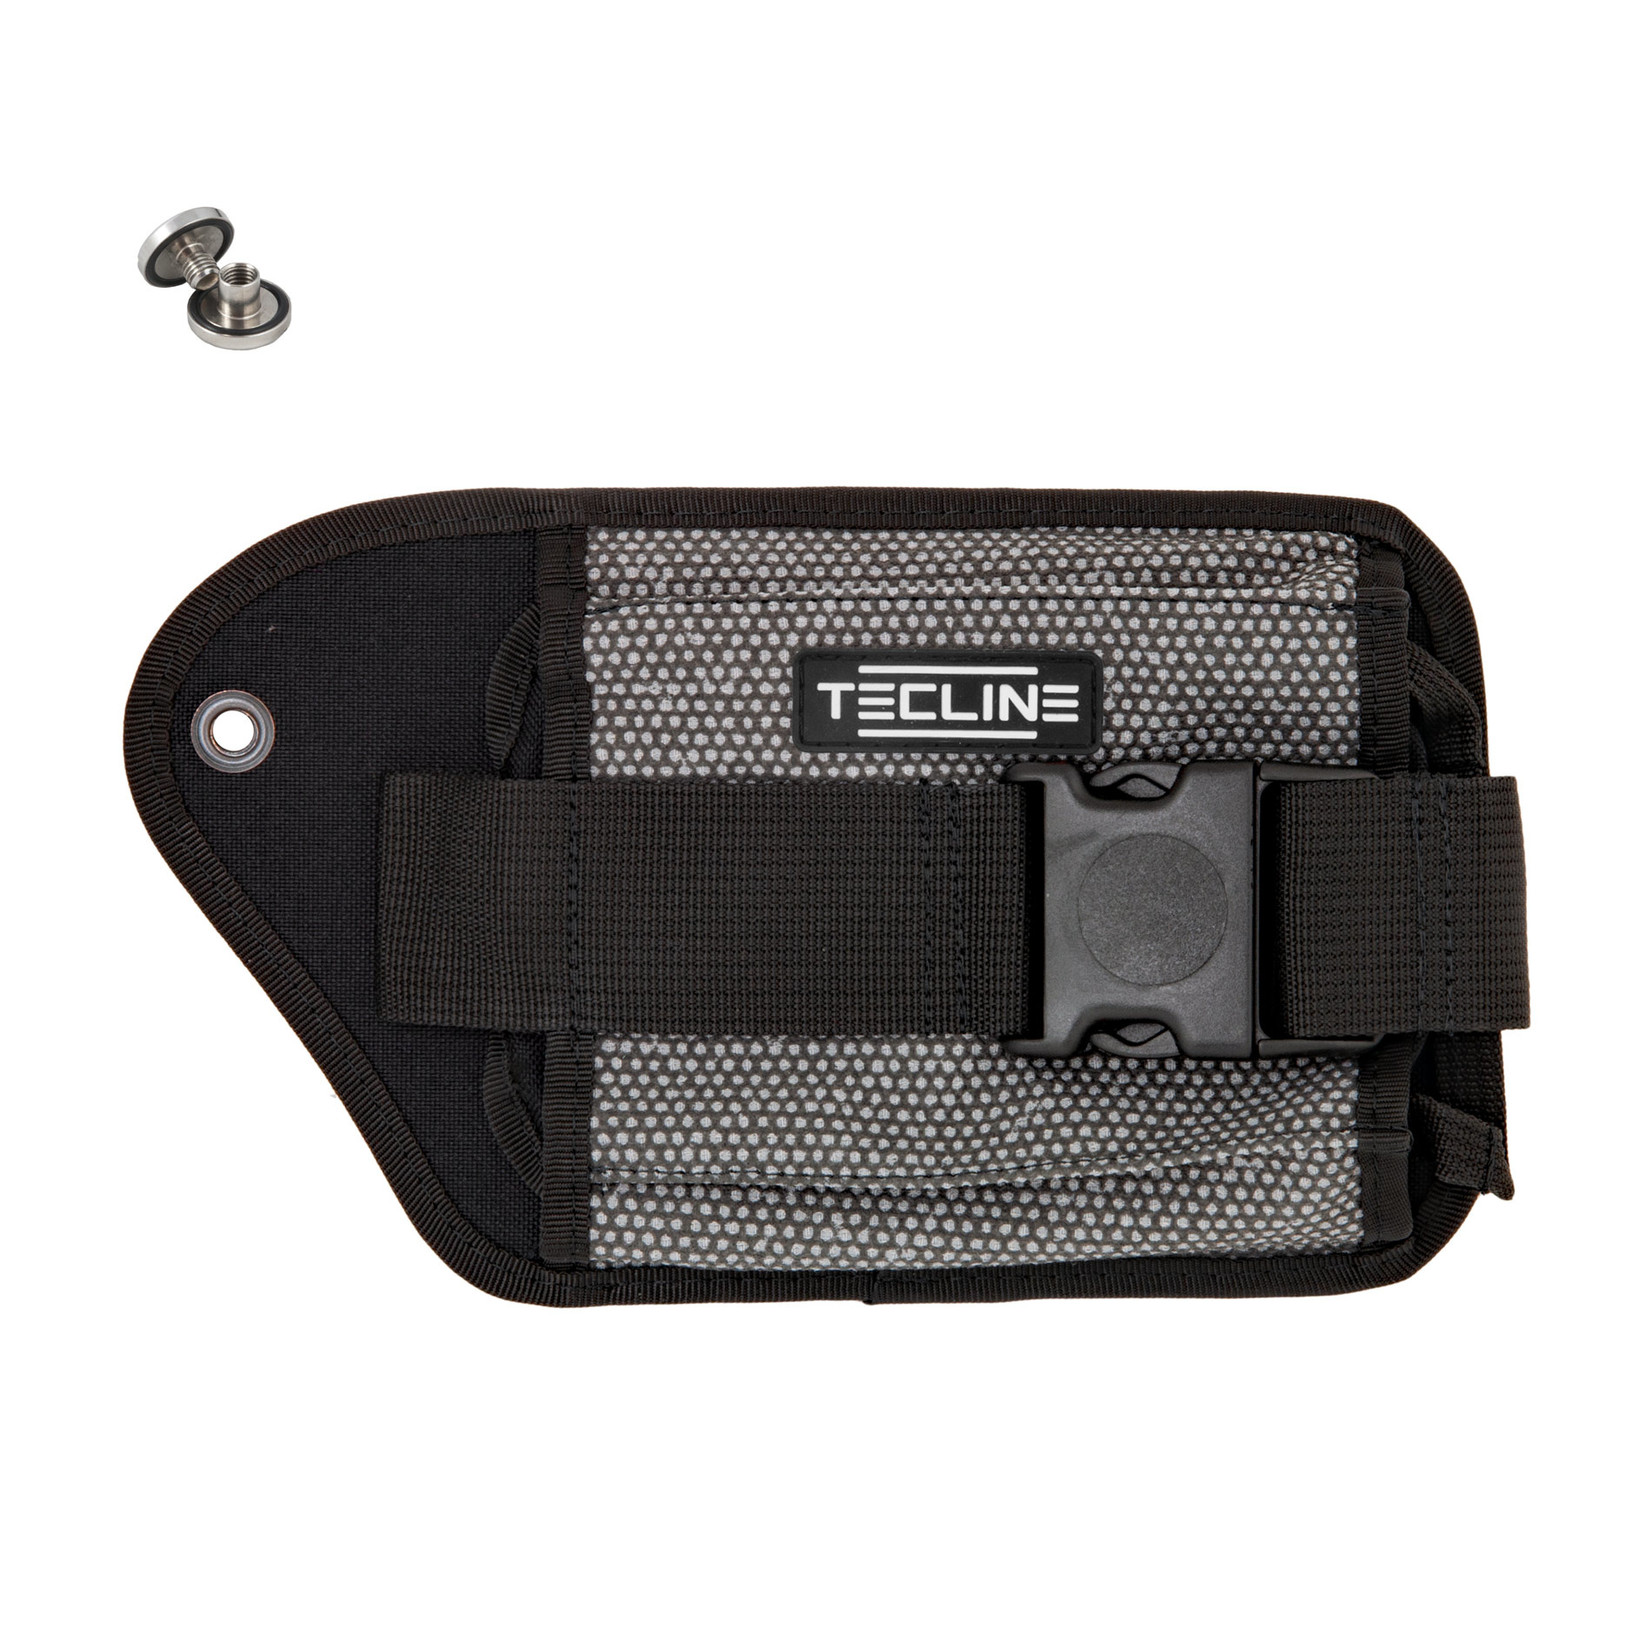 Tecline Double weight pocket Grey Kevlar, right - Tecline